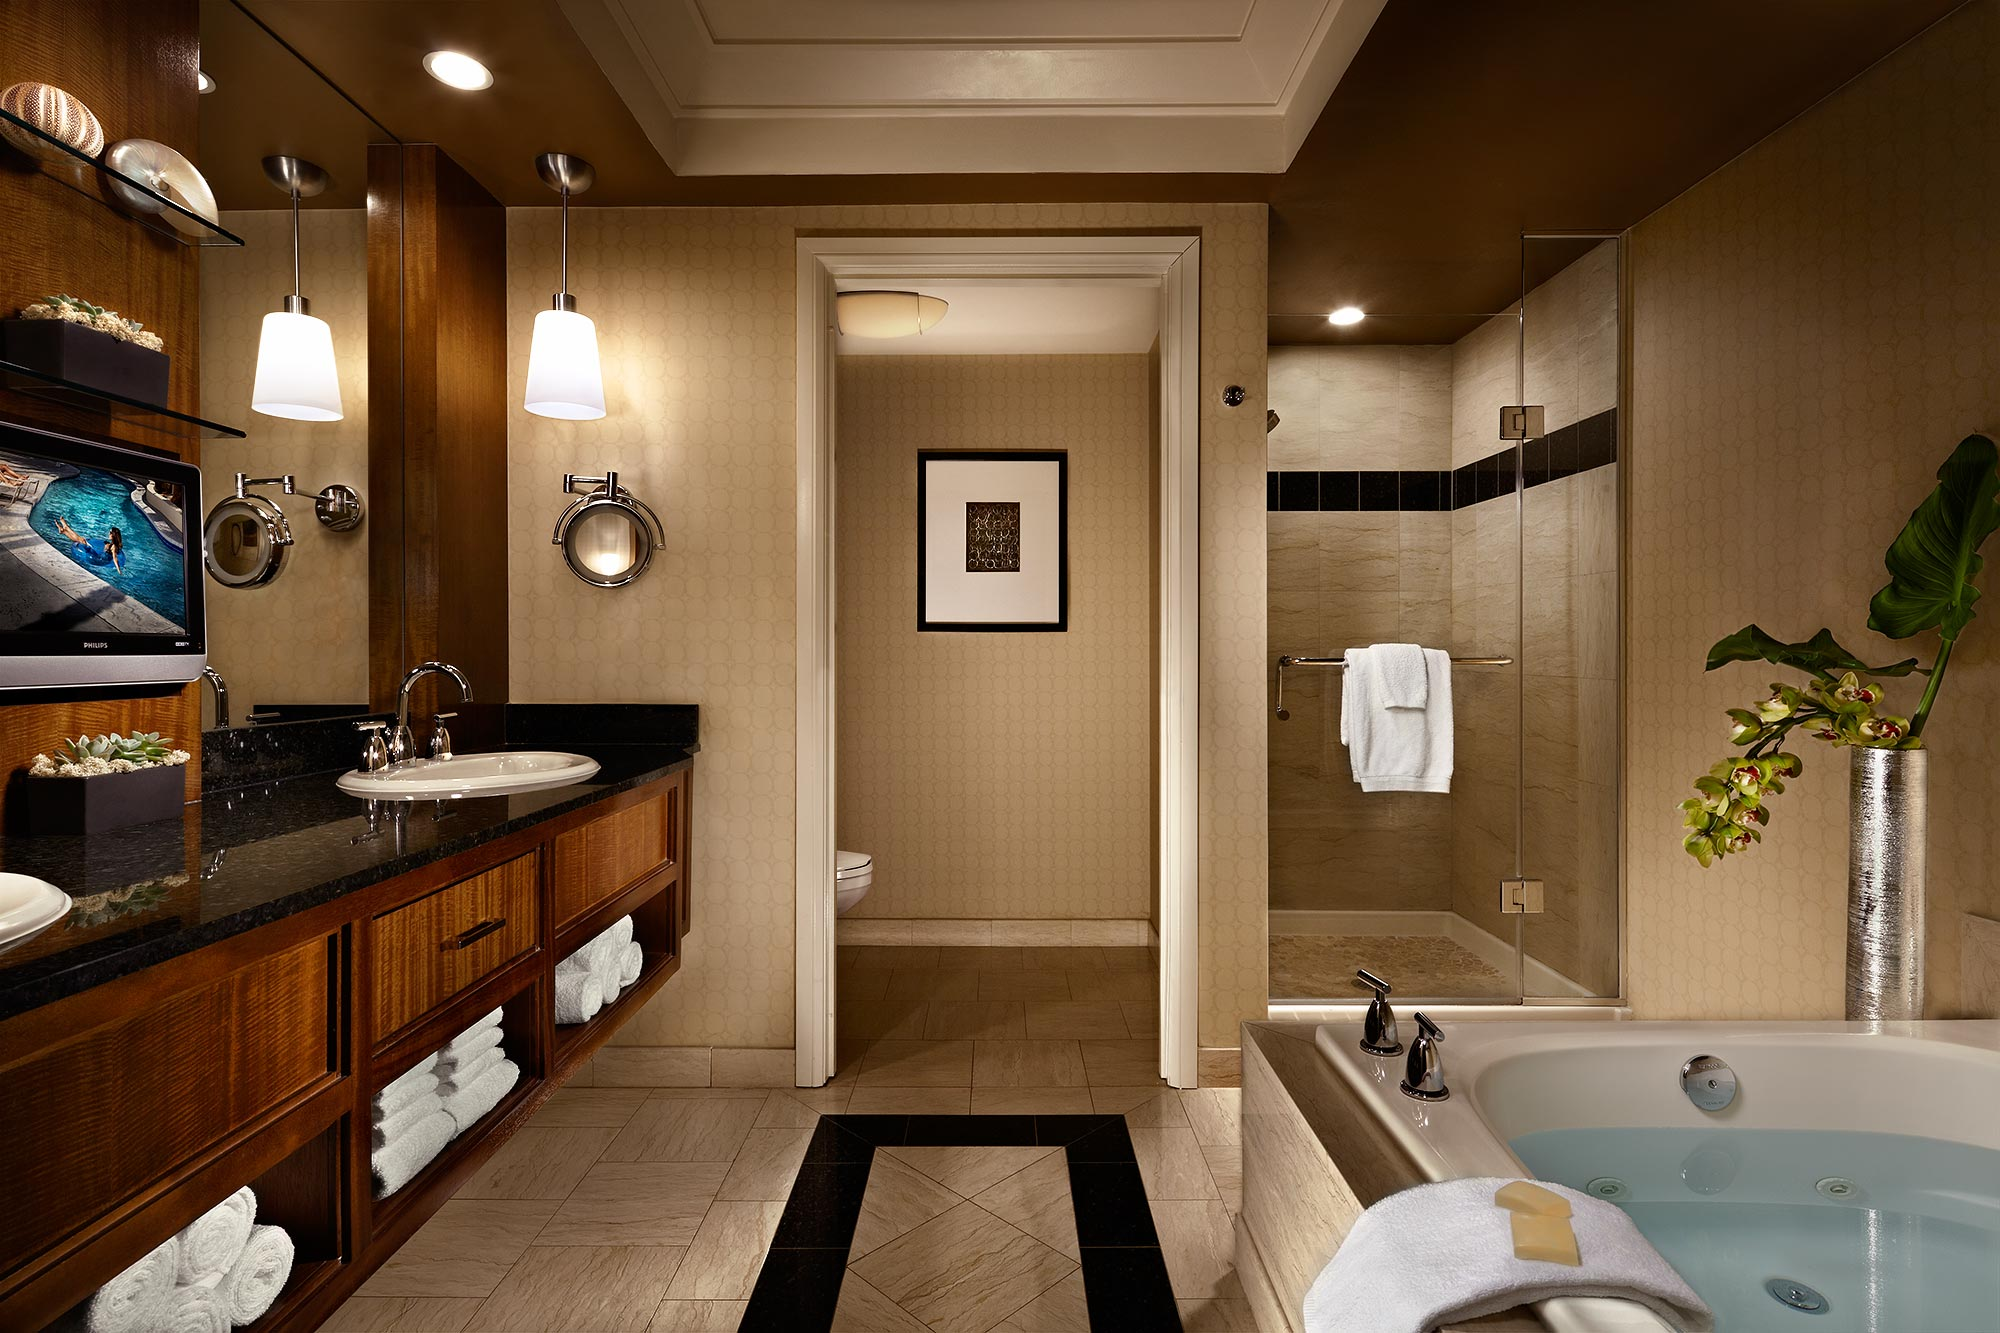 17_MBLV_X-3_Suite_BathRoom